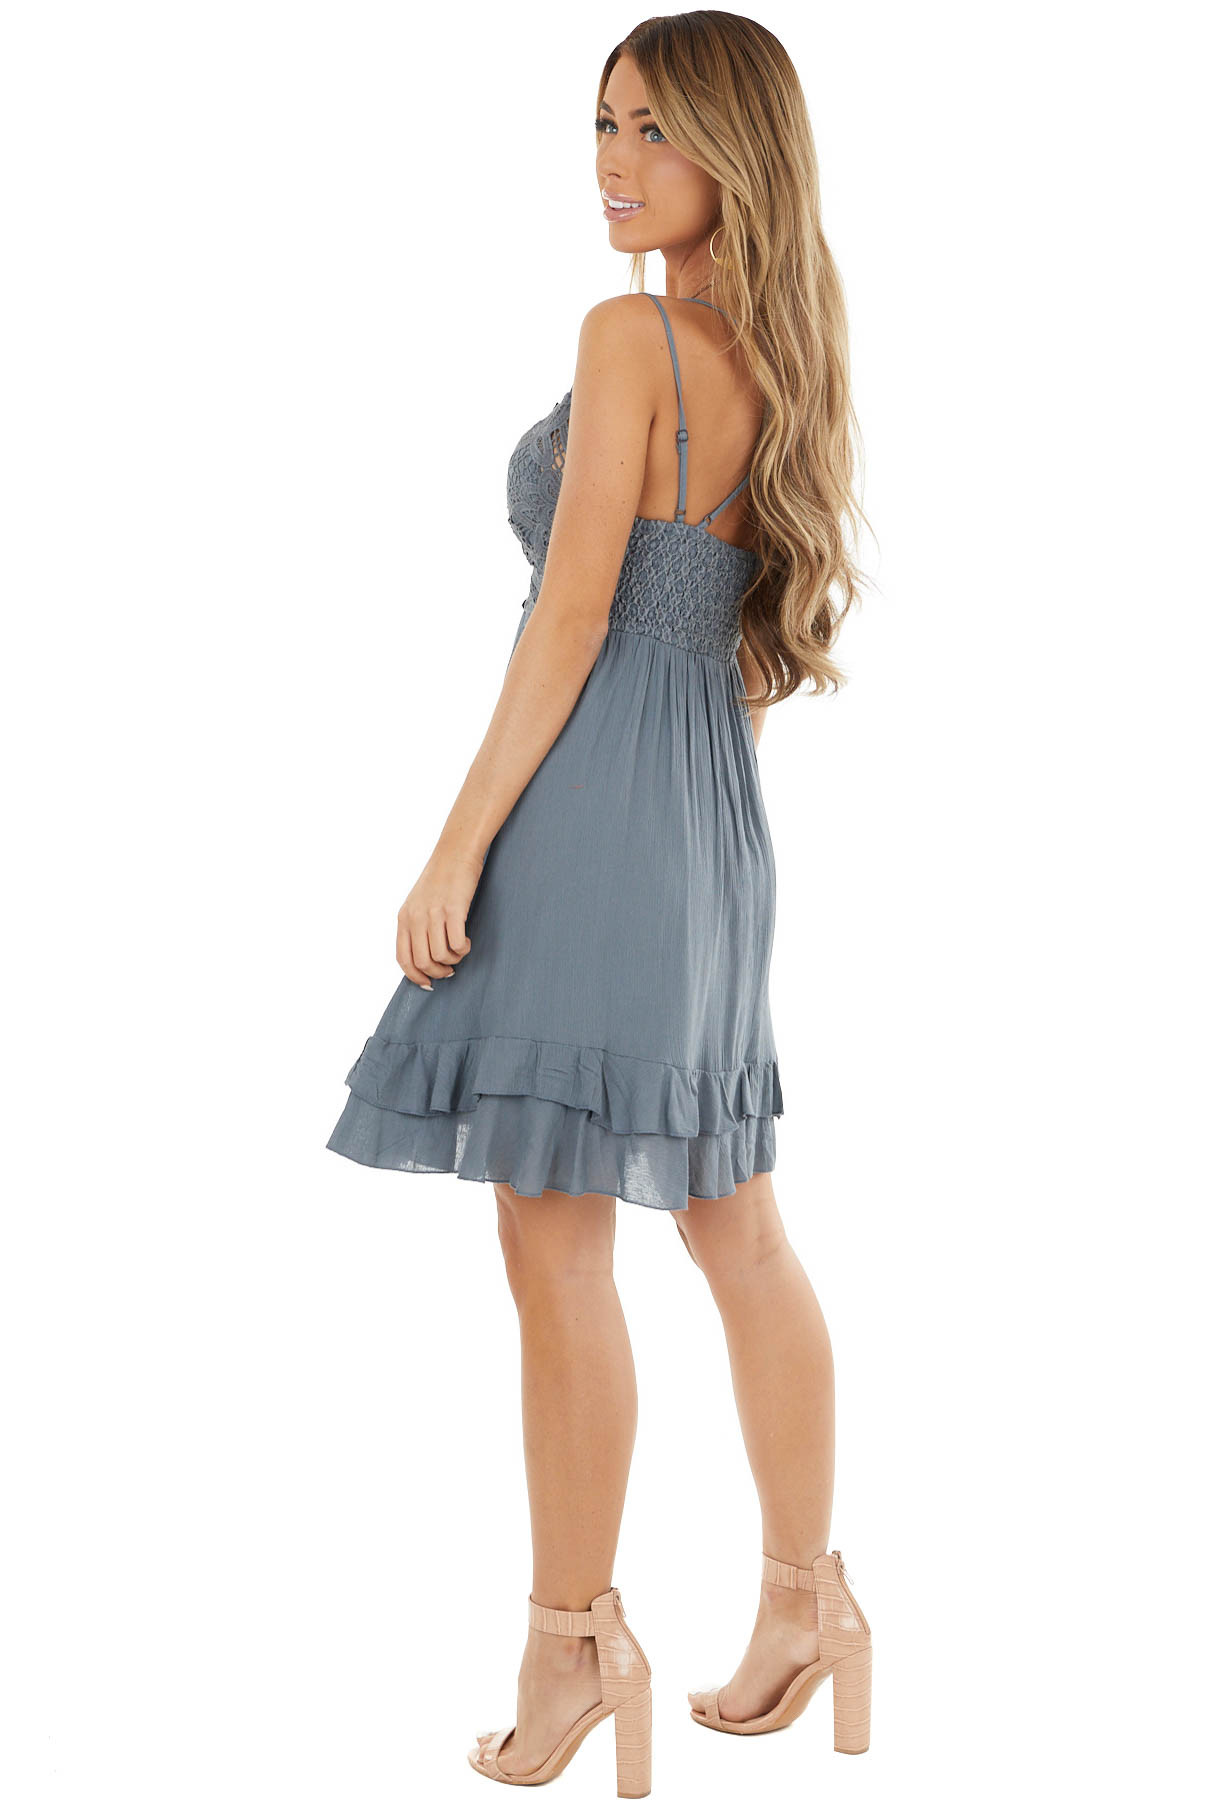 Stone Grey Crochet Lace Babydoll Dress with Tiered Ruffle